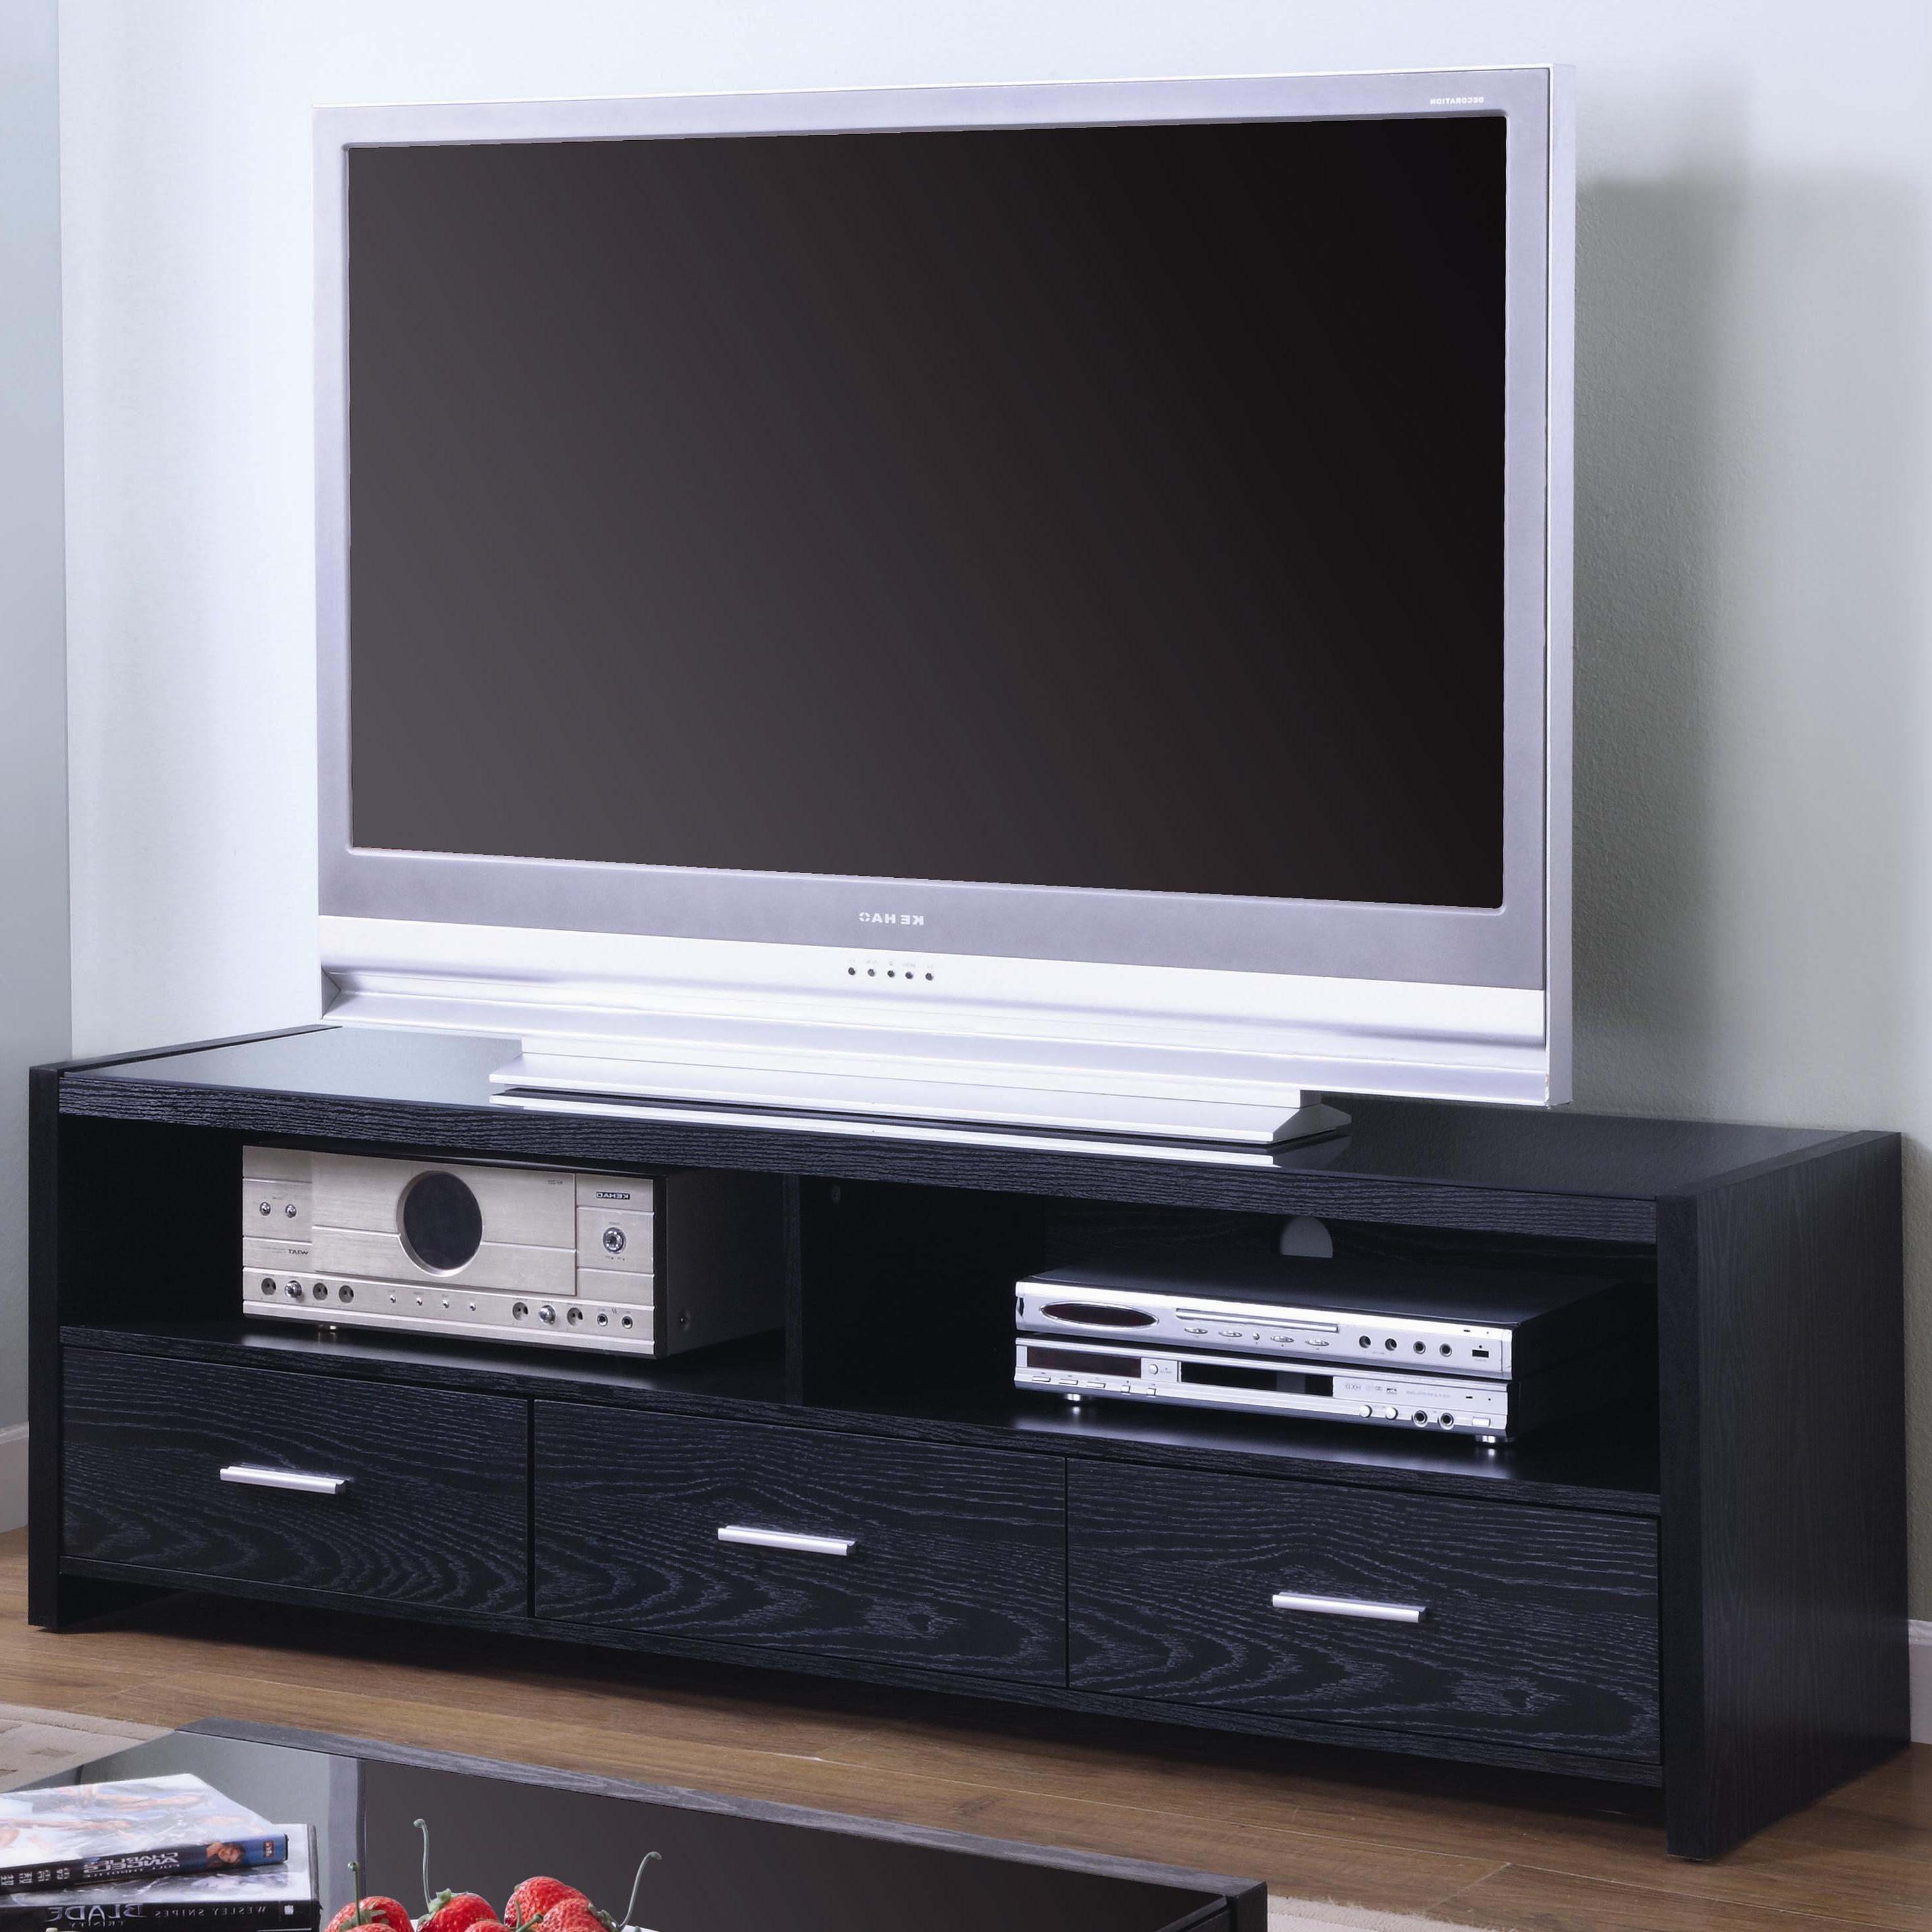 Best And Newest Coaster Tv Stands 700645 Contemporary Media Console With Shelves And Throughout Contemporary Tv Stands For Flat Screens (View 4 of 20)